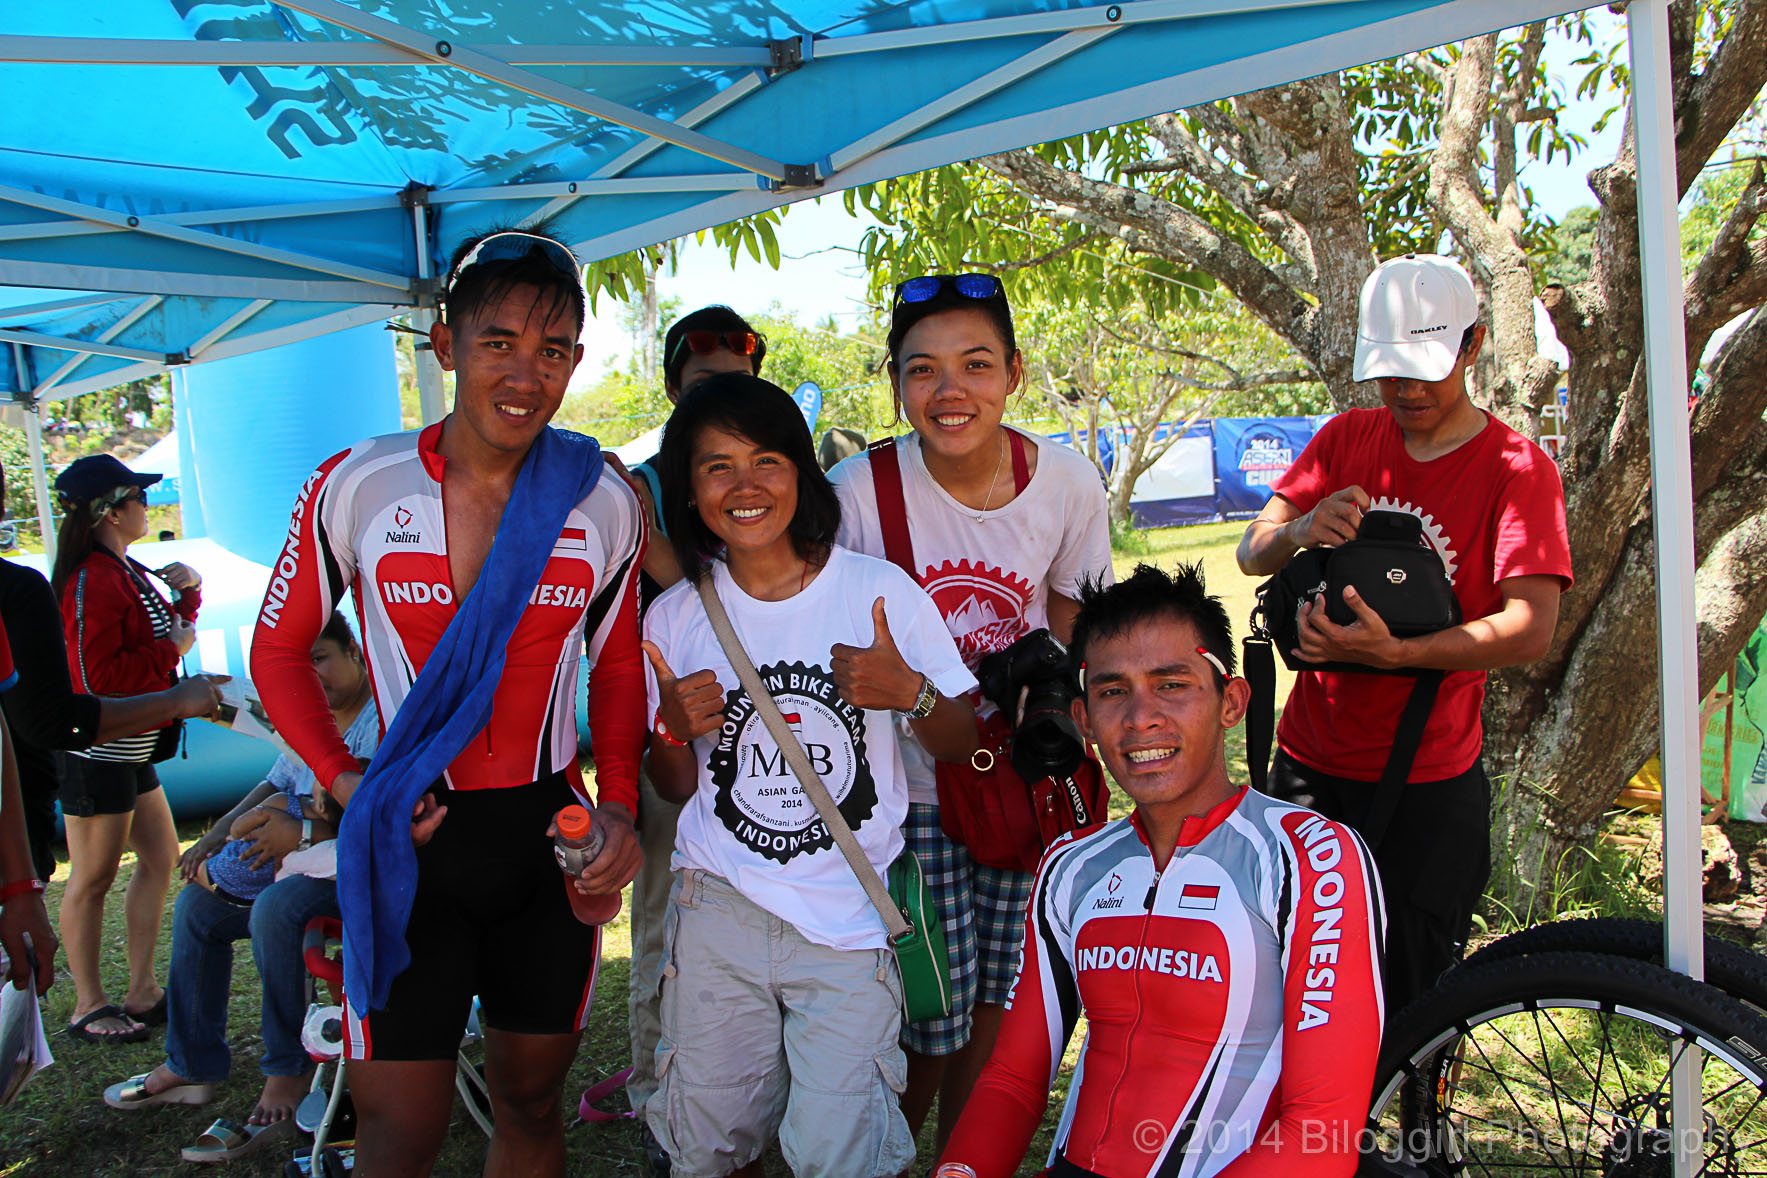 Team Indonesia MTB (Chandra, Kusmawati, Wilhelmina, Sugito)